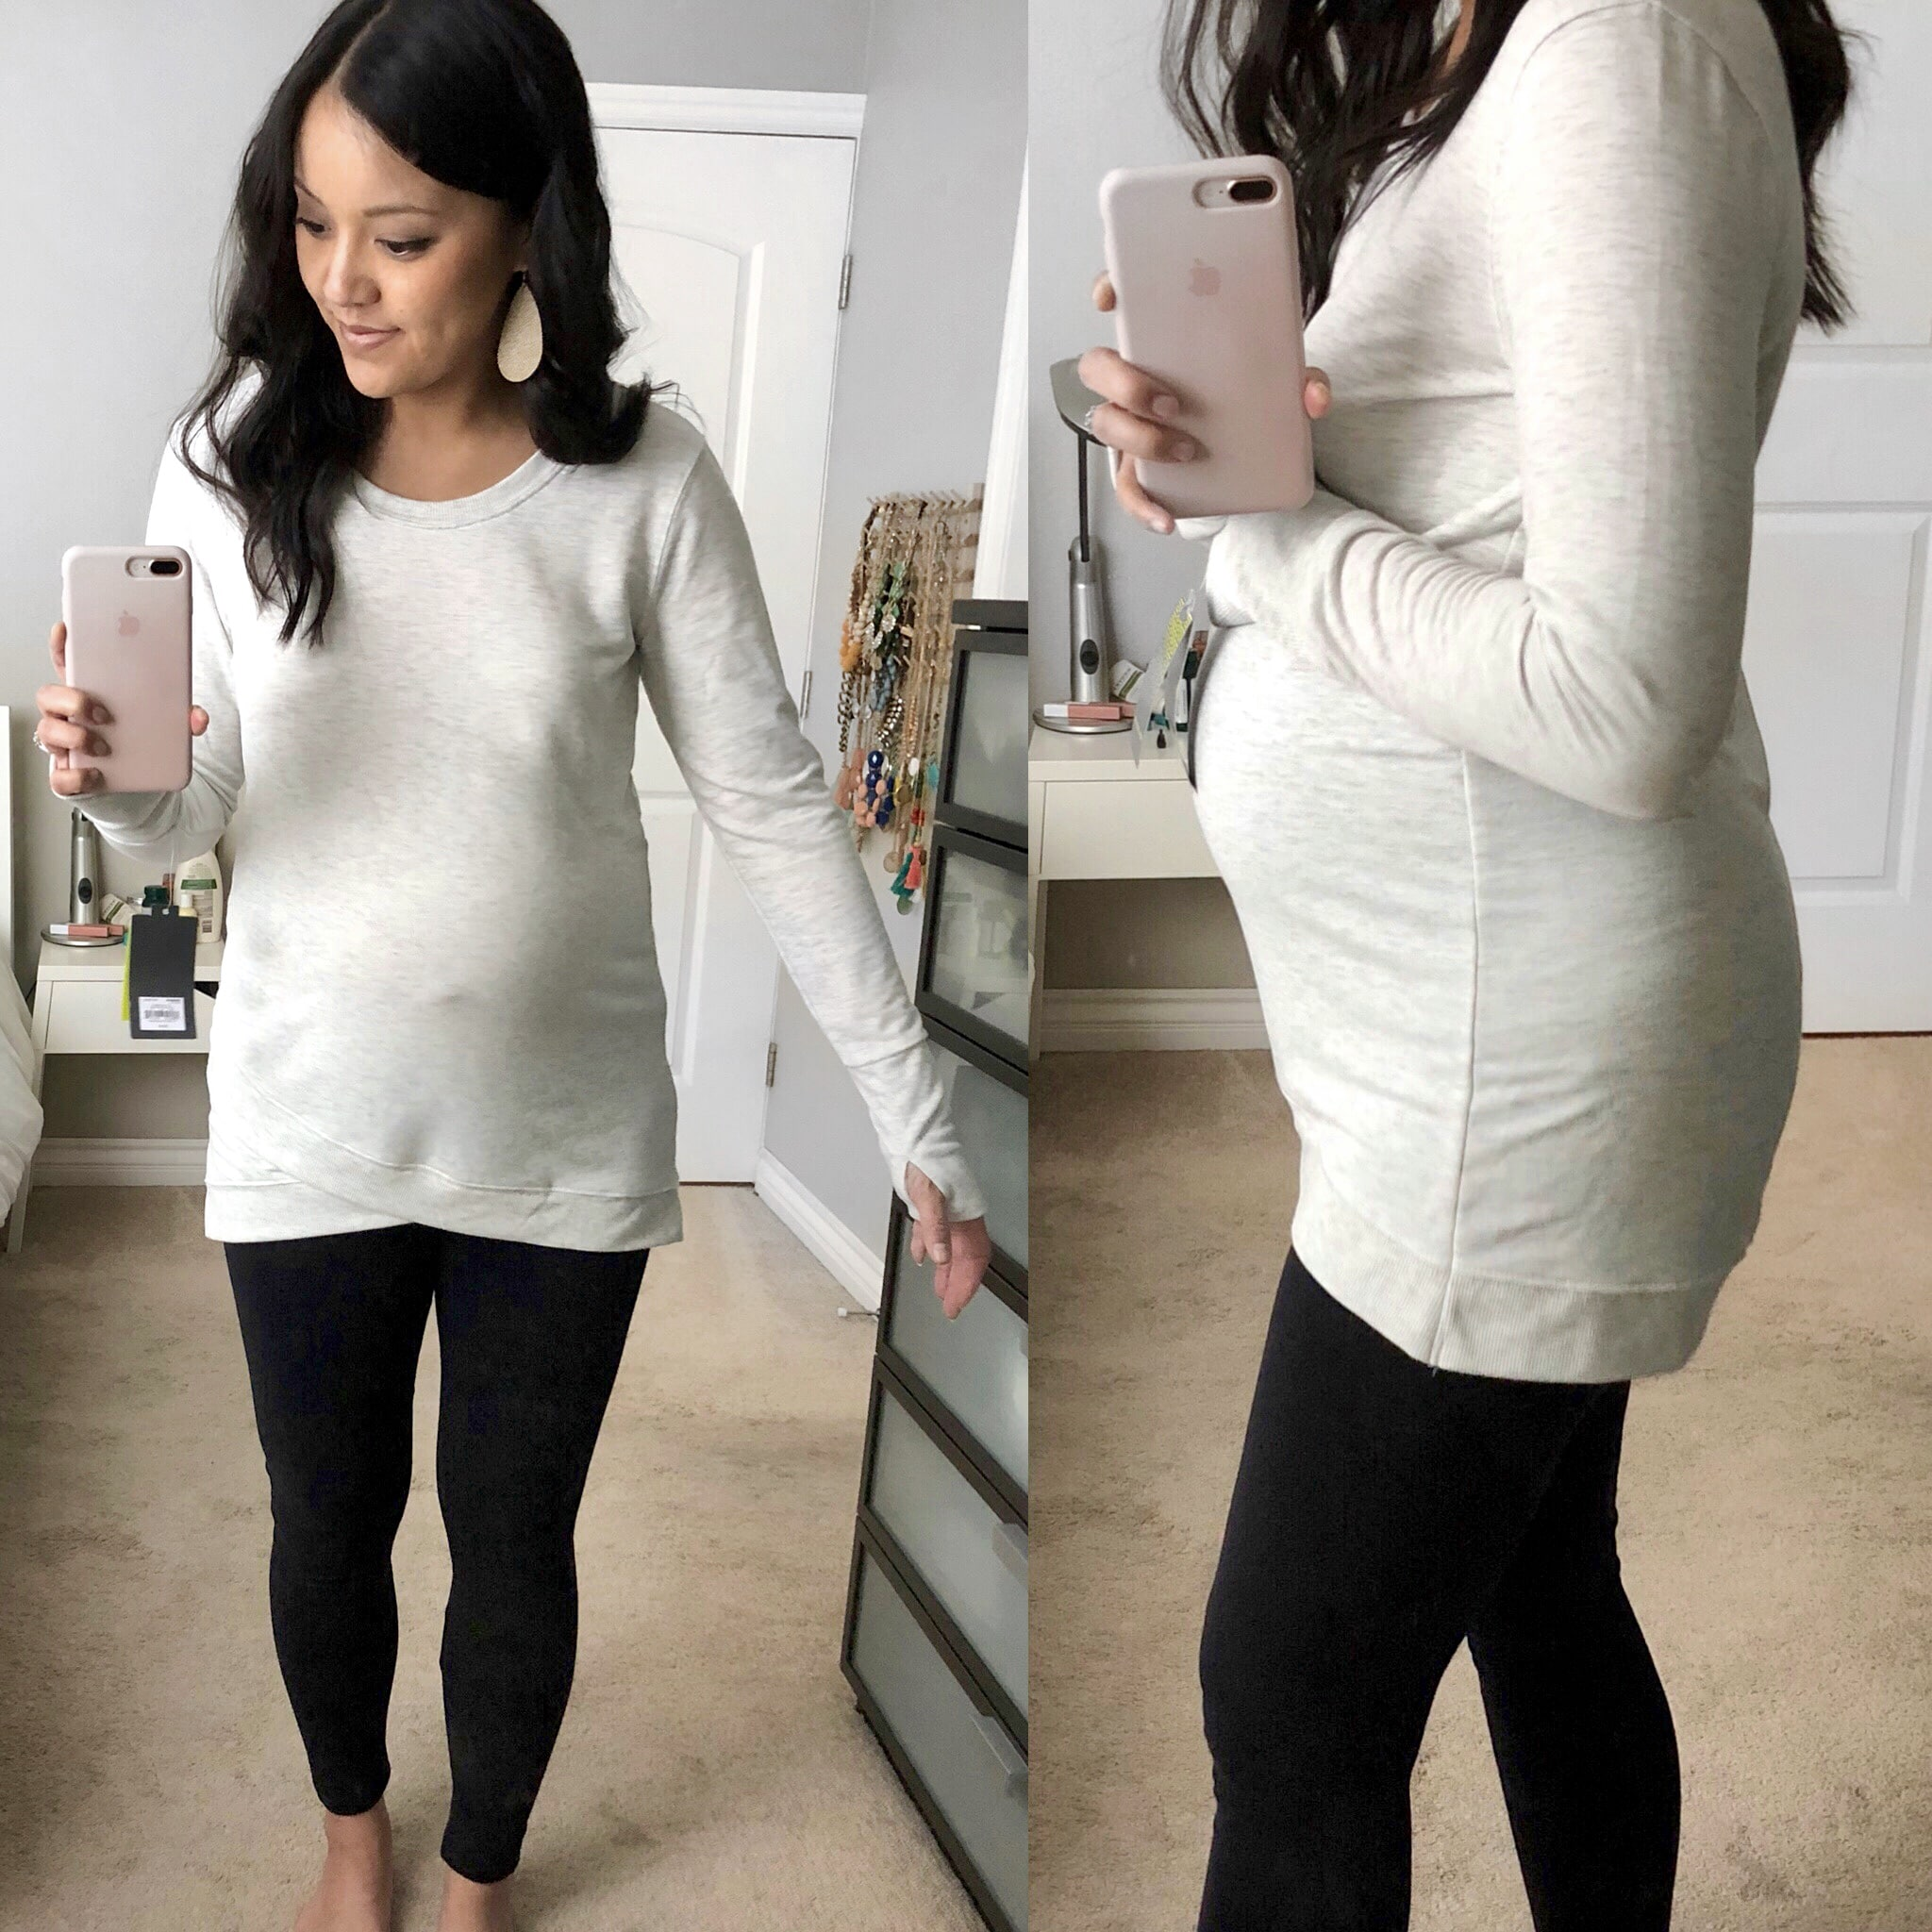 Cross Hem Tunic for Athleisure